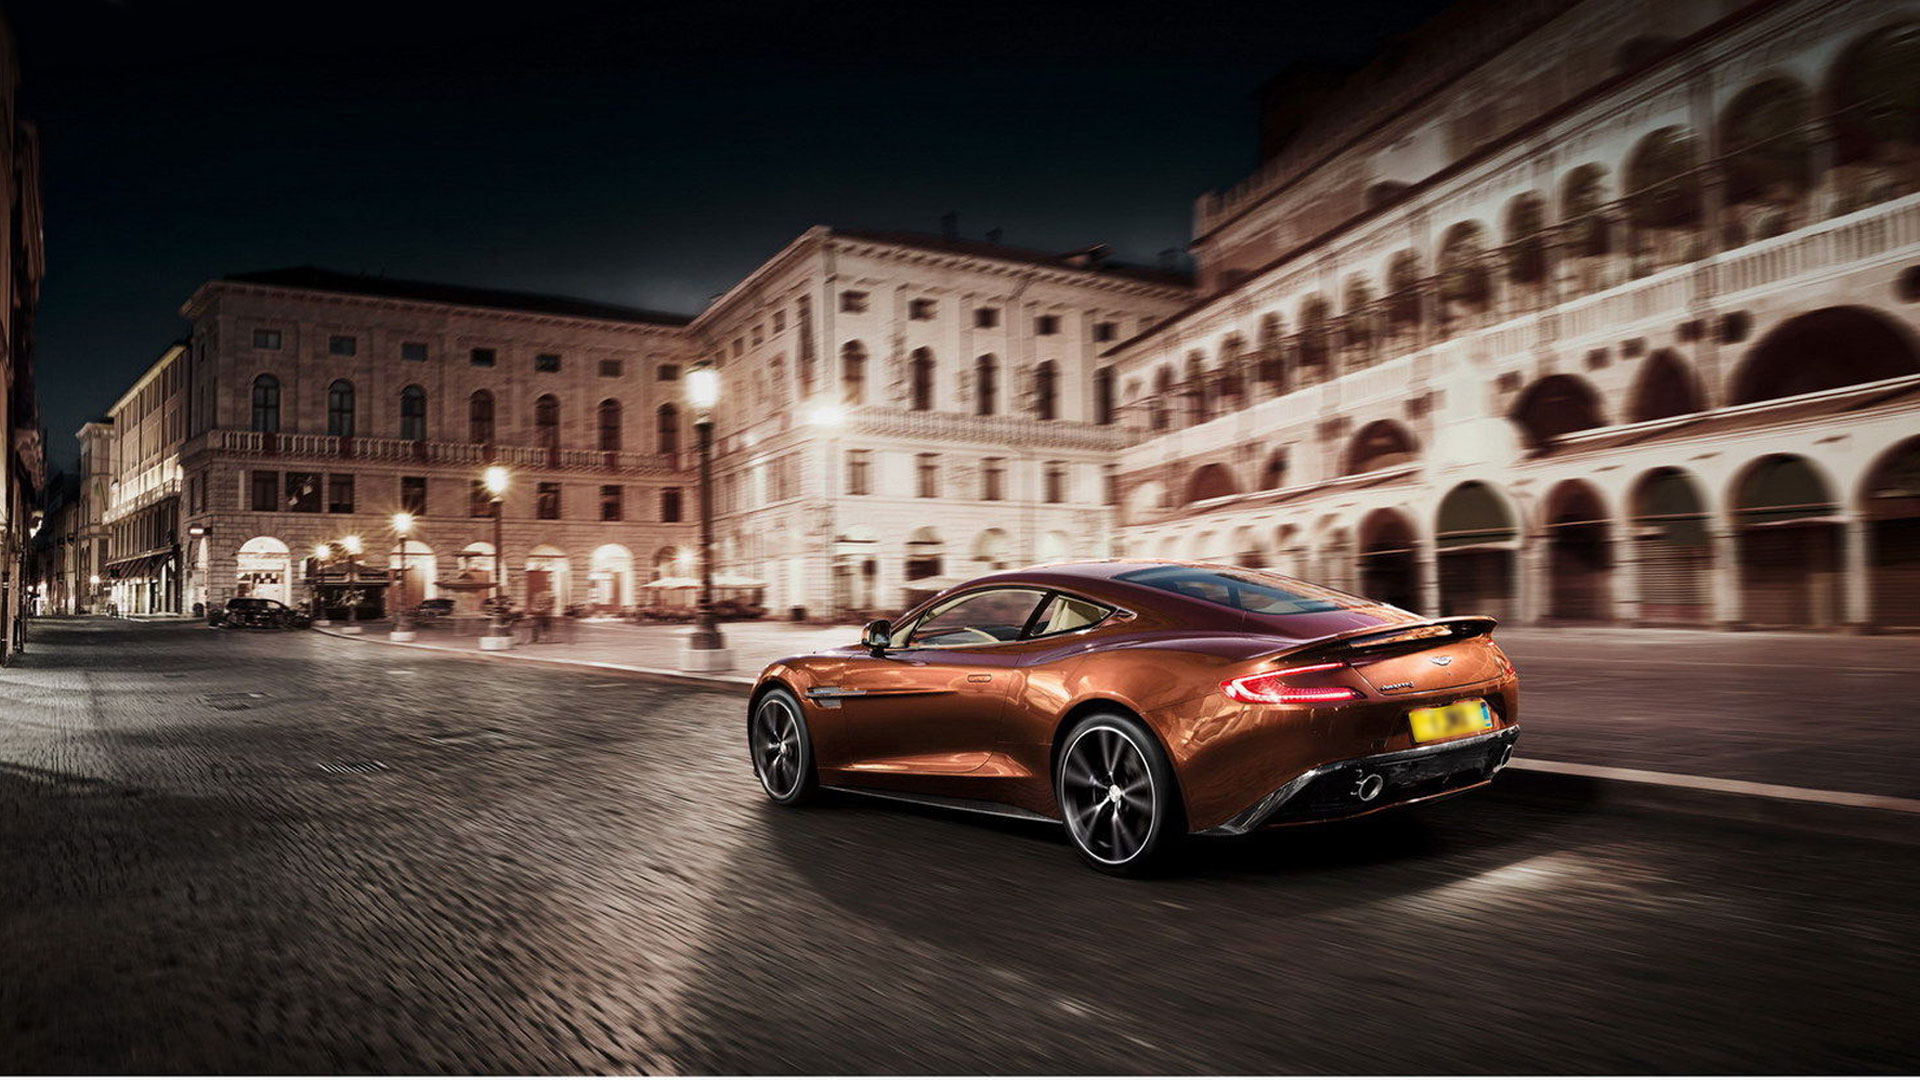 Aston martin wallpaper sf wallpaper aston martin wallpaper hd hd widescreen aston martin hd src publicscrutiny Image collections